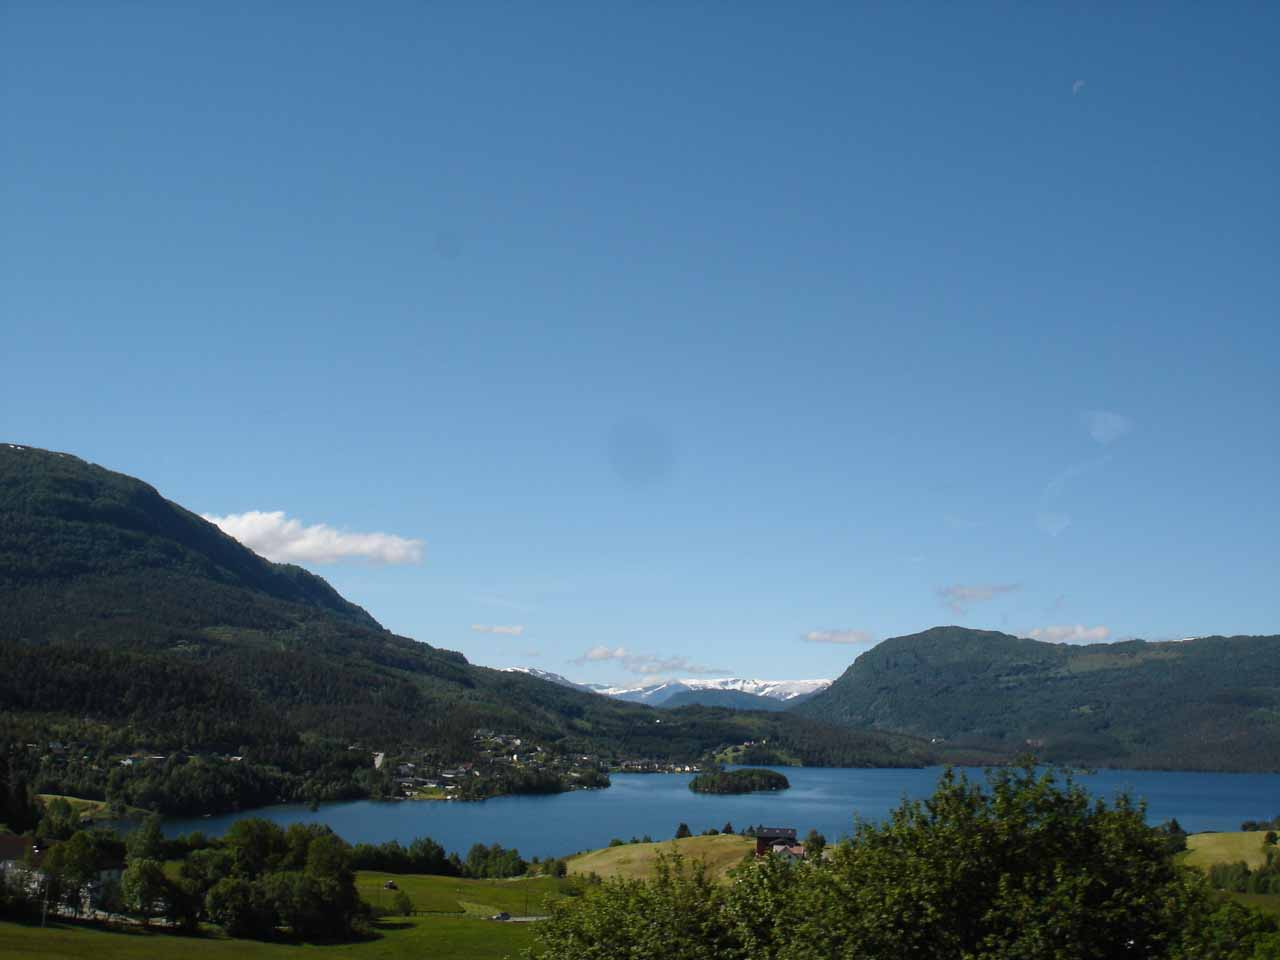 View of part of Sognefjorden from around the town of Leikanger